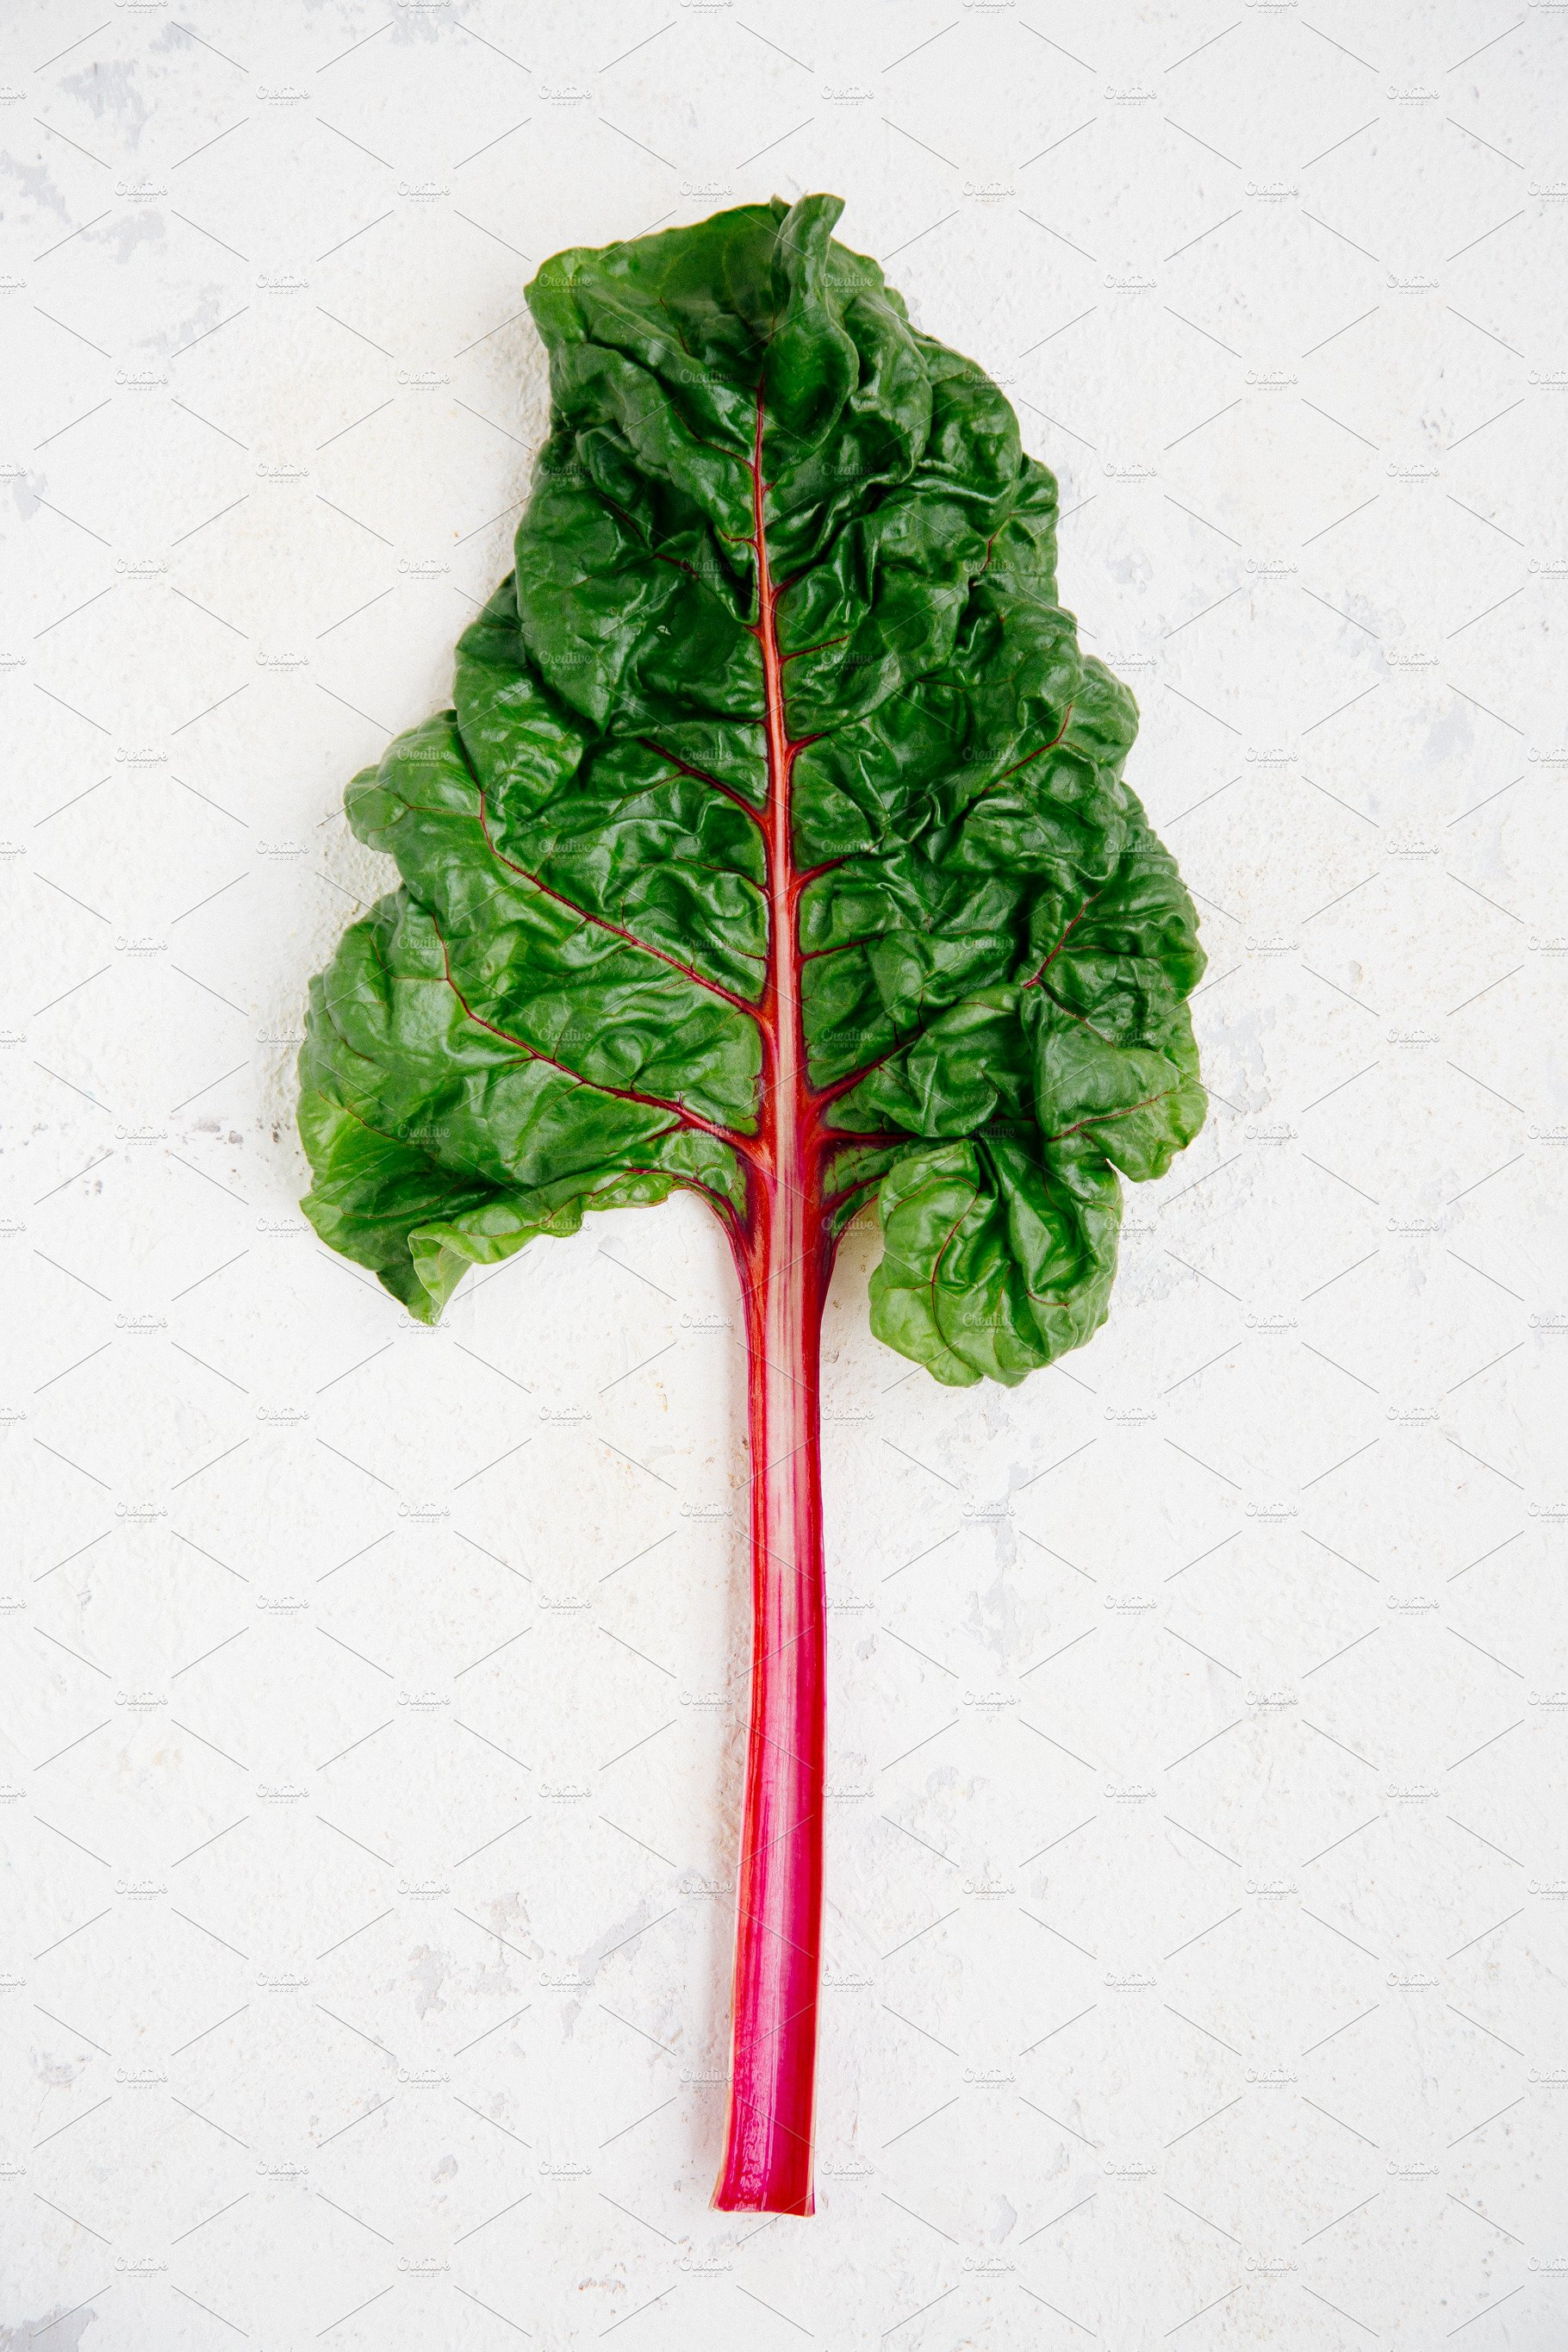 Swiss Chard Leaf With Purple Stem High Quality Food Images Creative Market